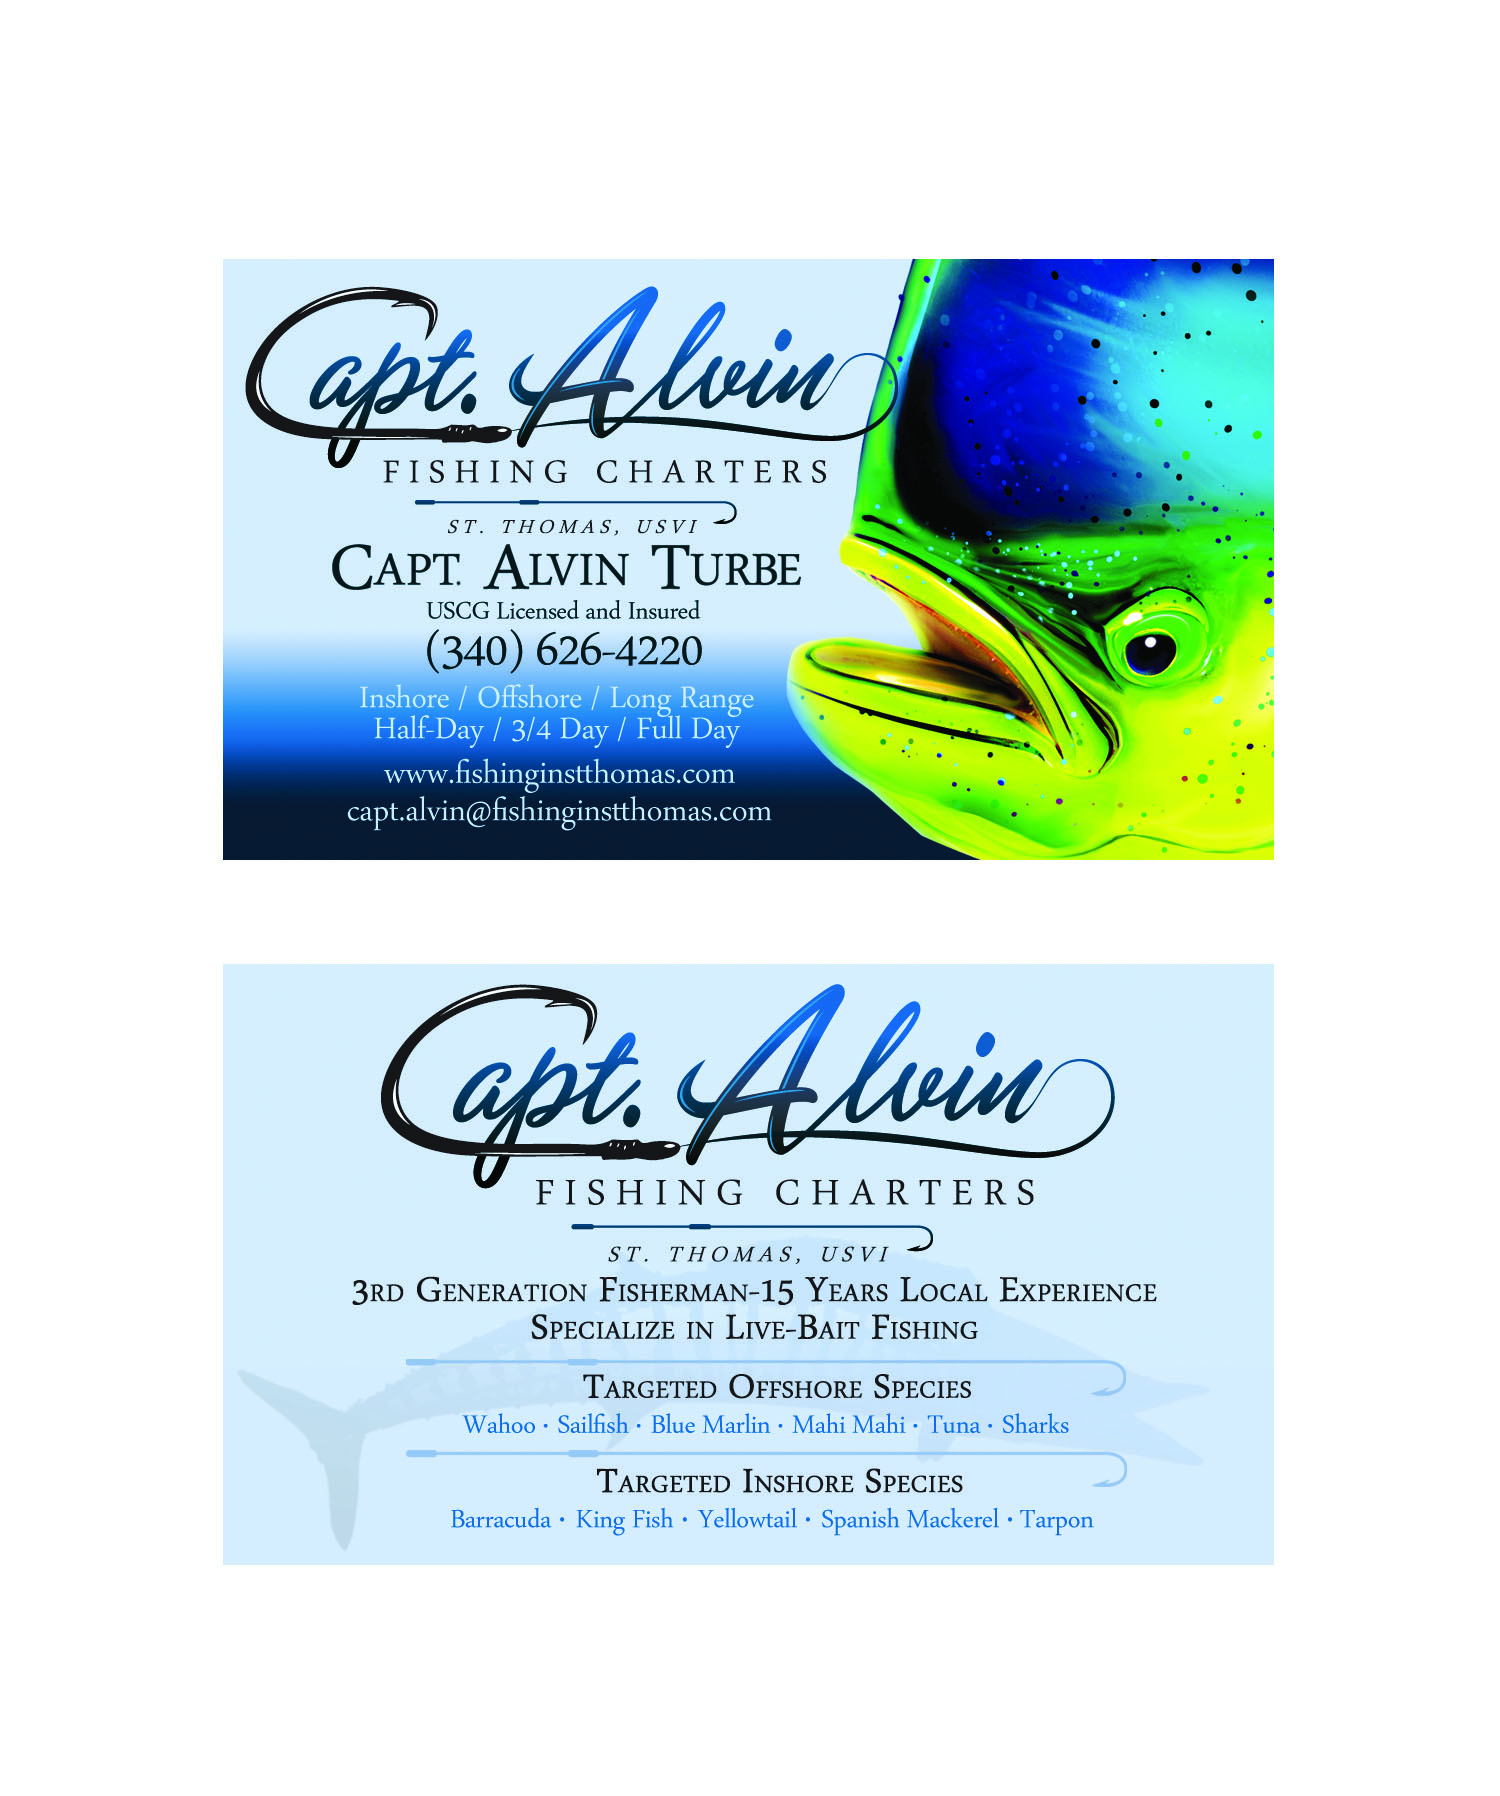 Sport fishing business cards best business cards capt alvin charters st thomas marine logos websites t shirts magicingreecefo Image collections